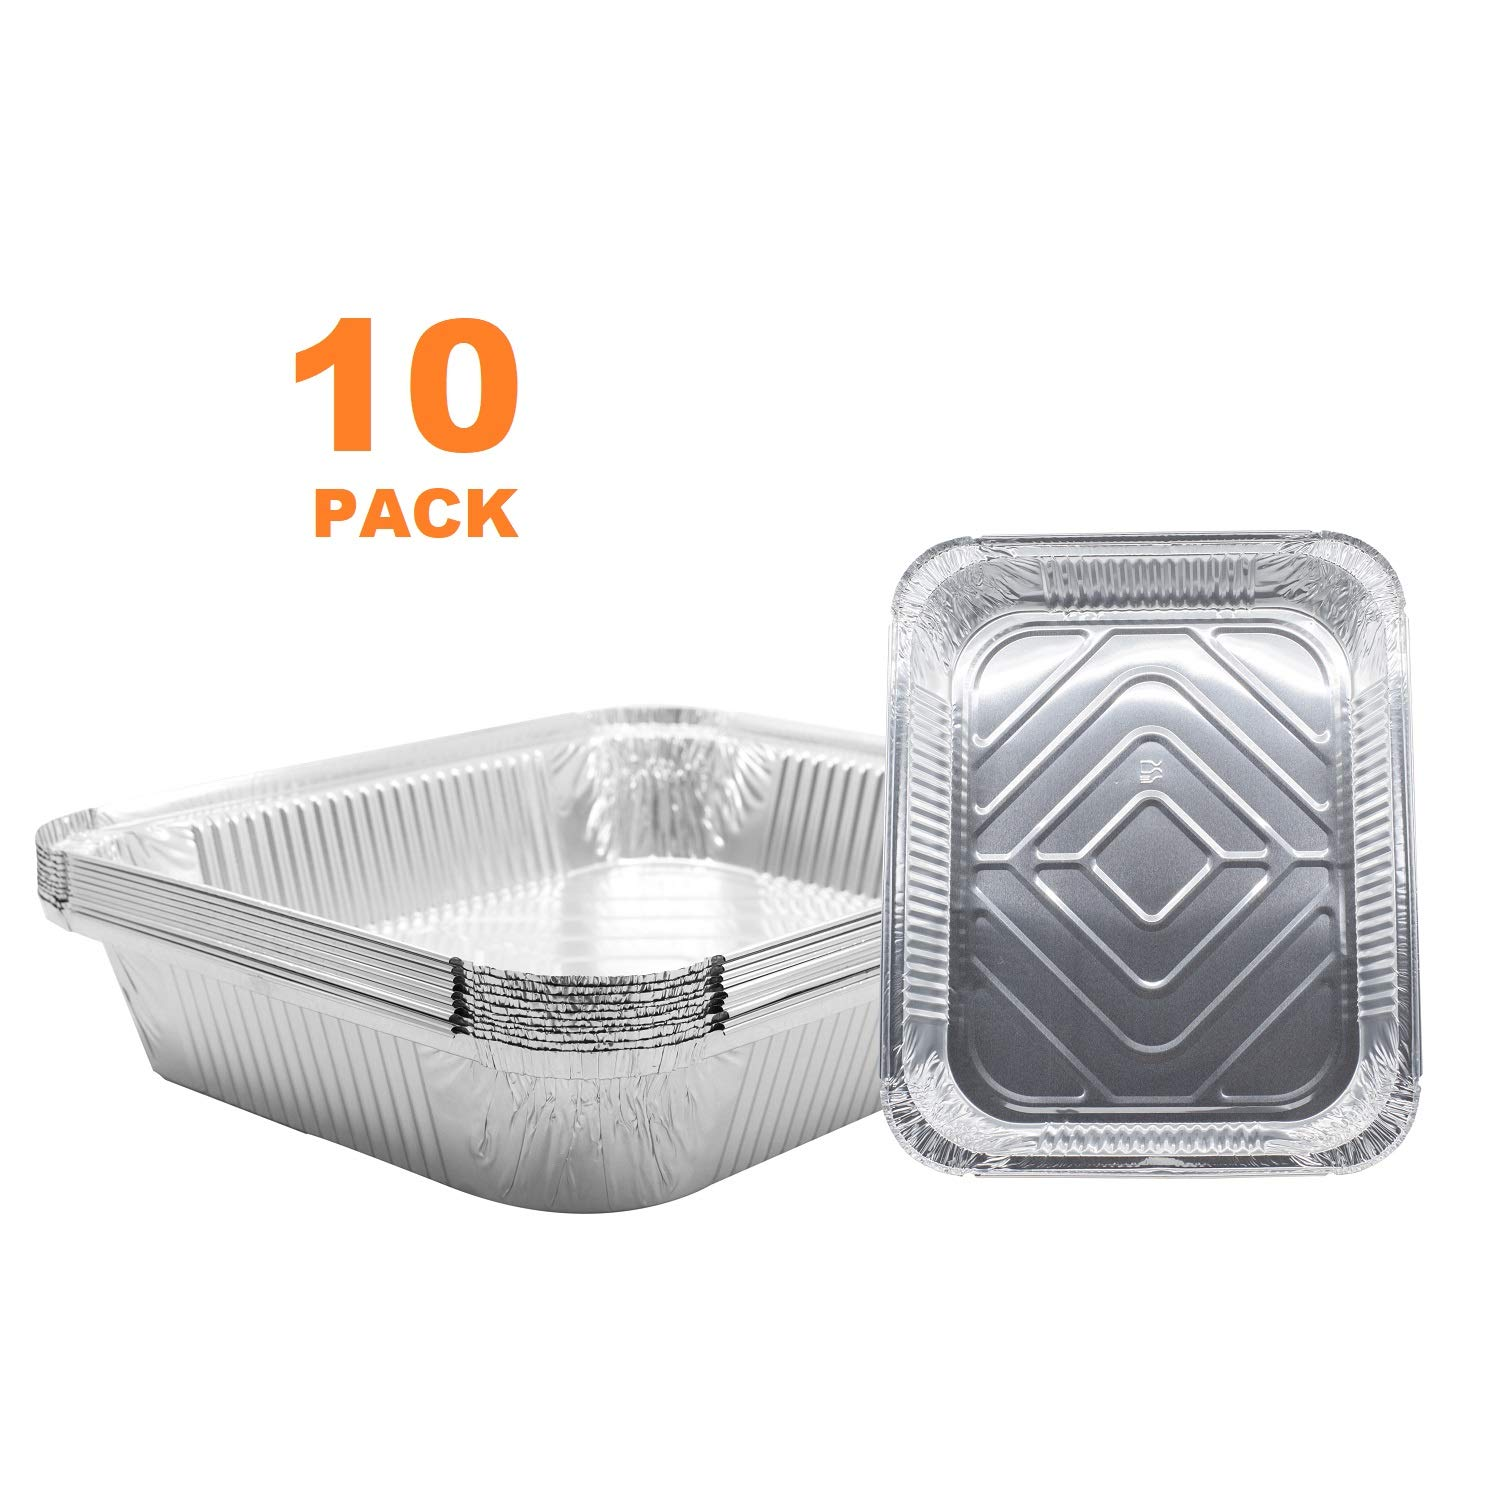 (10 Pack) 9 x 13 Aluminum Foil Pans - Disposable Steam Table Grill Drip Deep Trays, Meal Cooking, Baking, Roasting, Broiling, Heating Buffet Trays Tin Pans. Half Size- 12 1/2'' x 10 1/4'' x 2 1/2'' inch